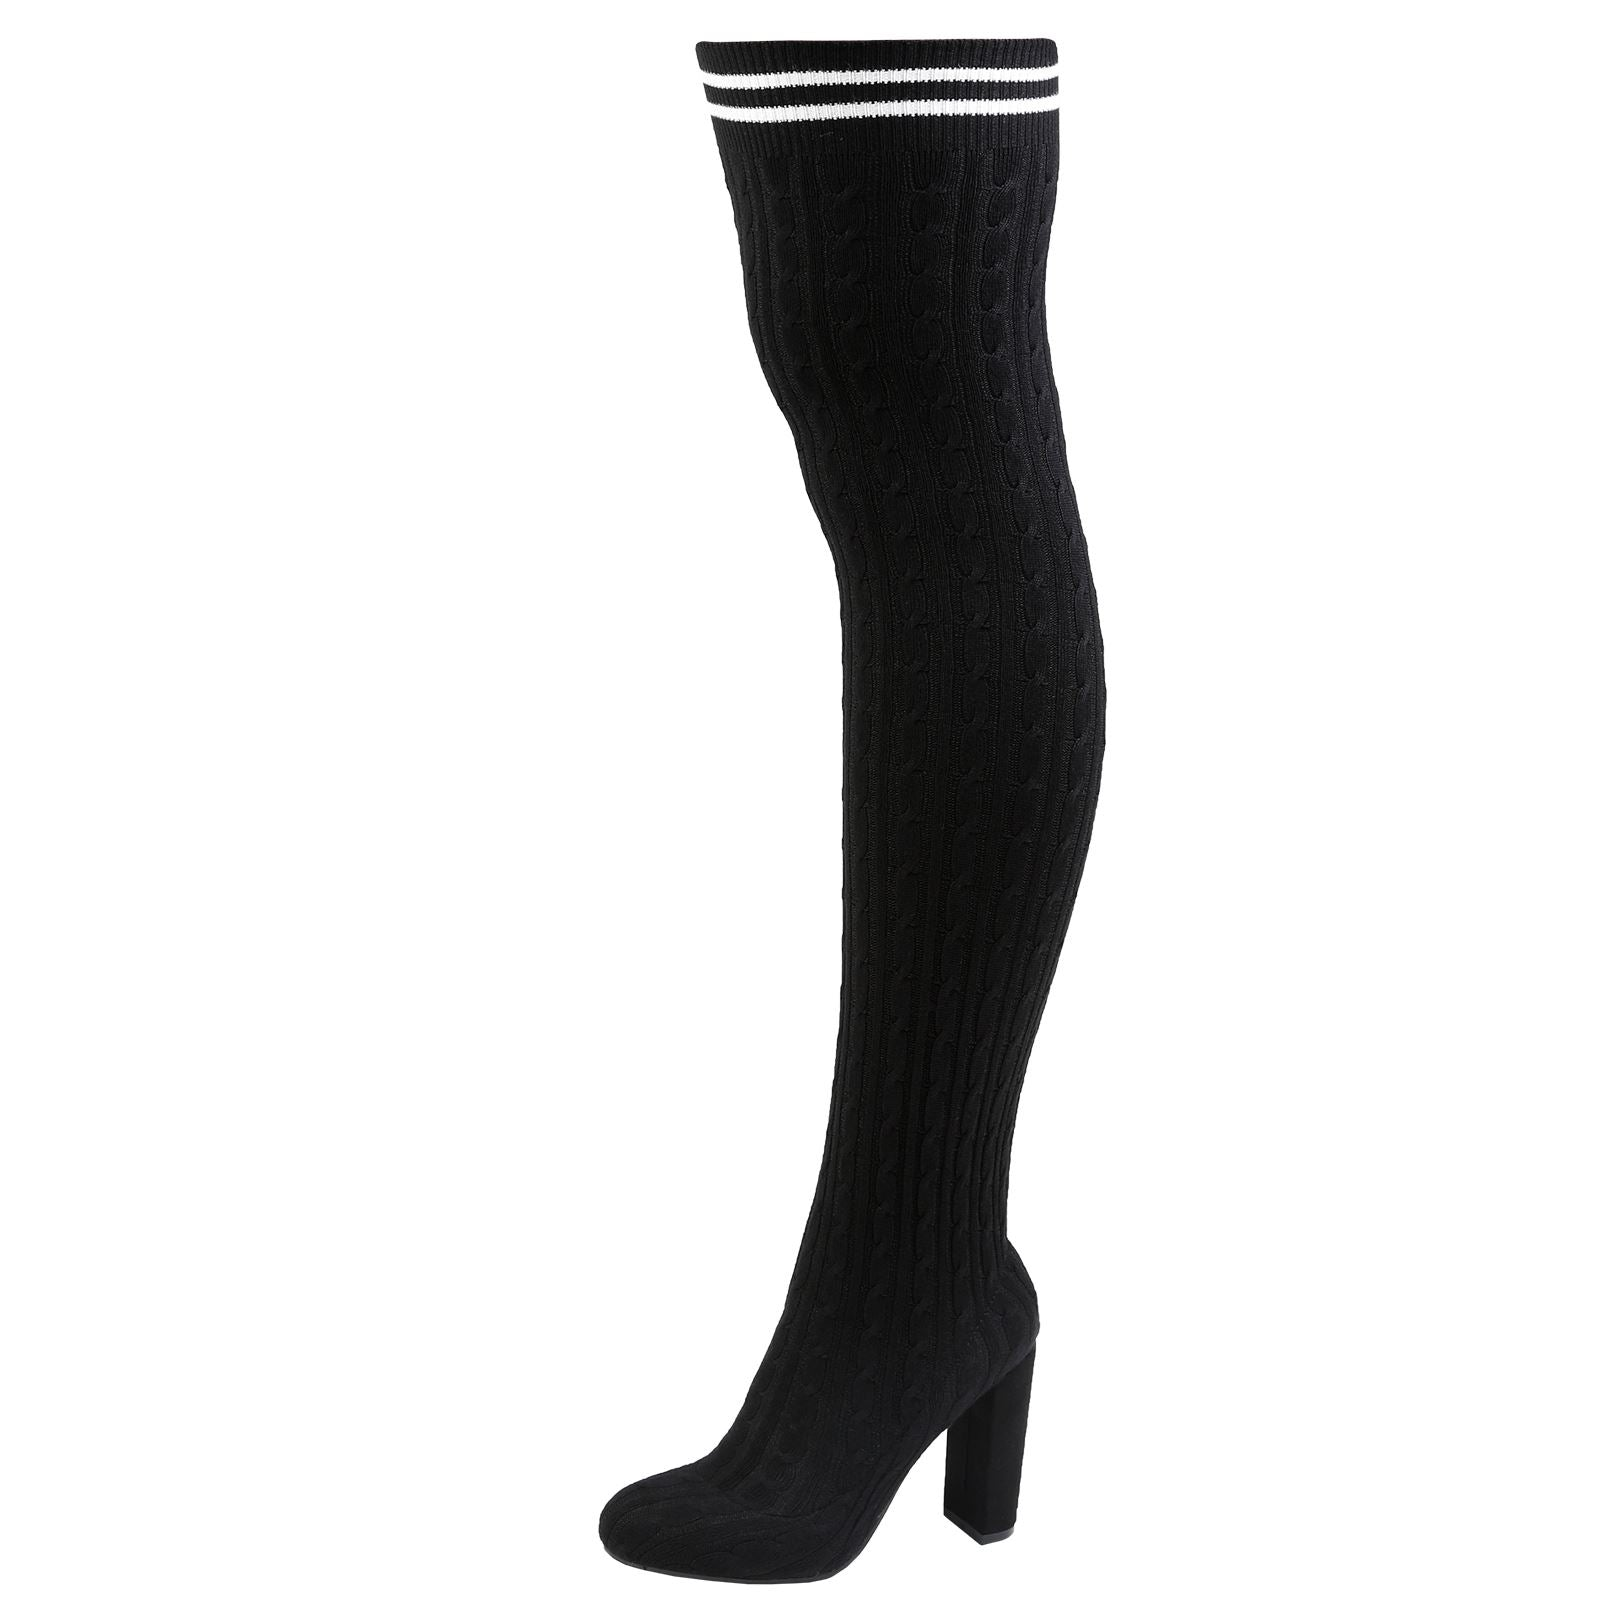 Daniela Cable Knit Over the Knee Boots in Black